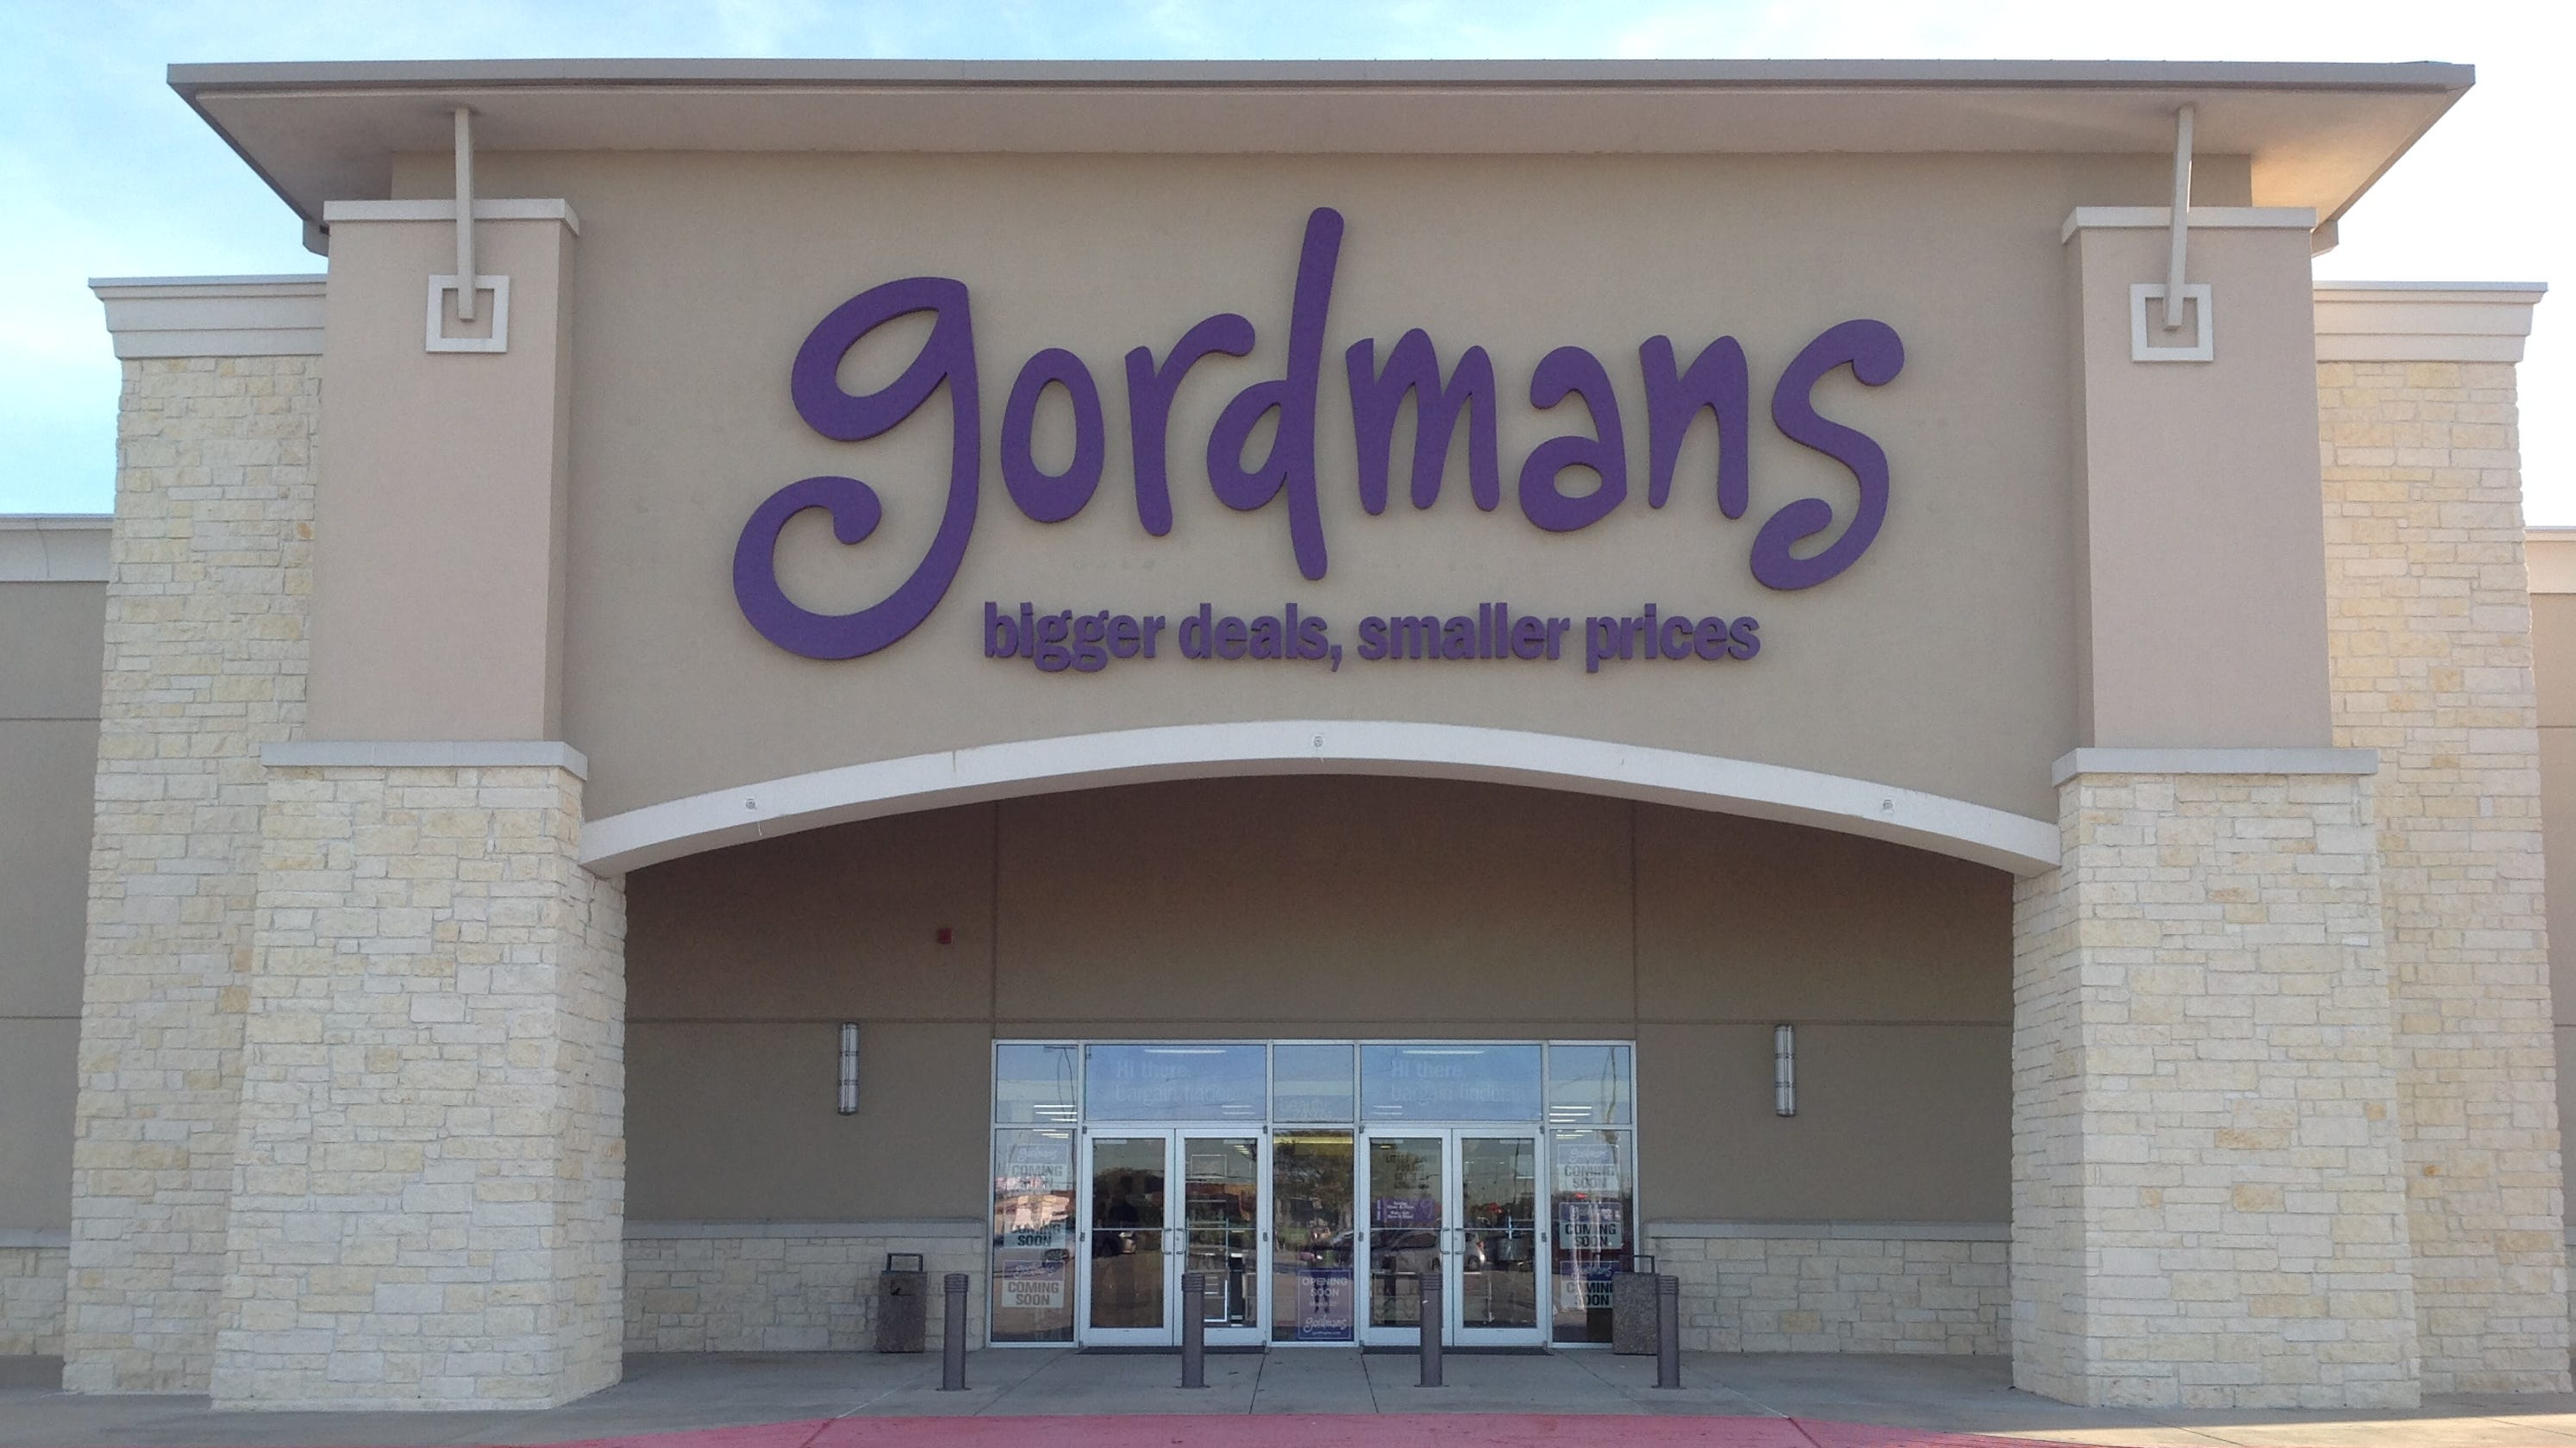 ca1530ec29 Gordmans brings a different brand of retail store to Mukwonago